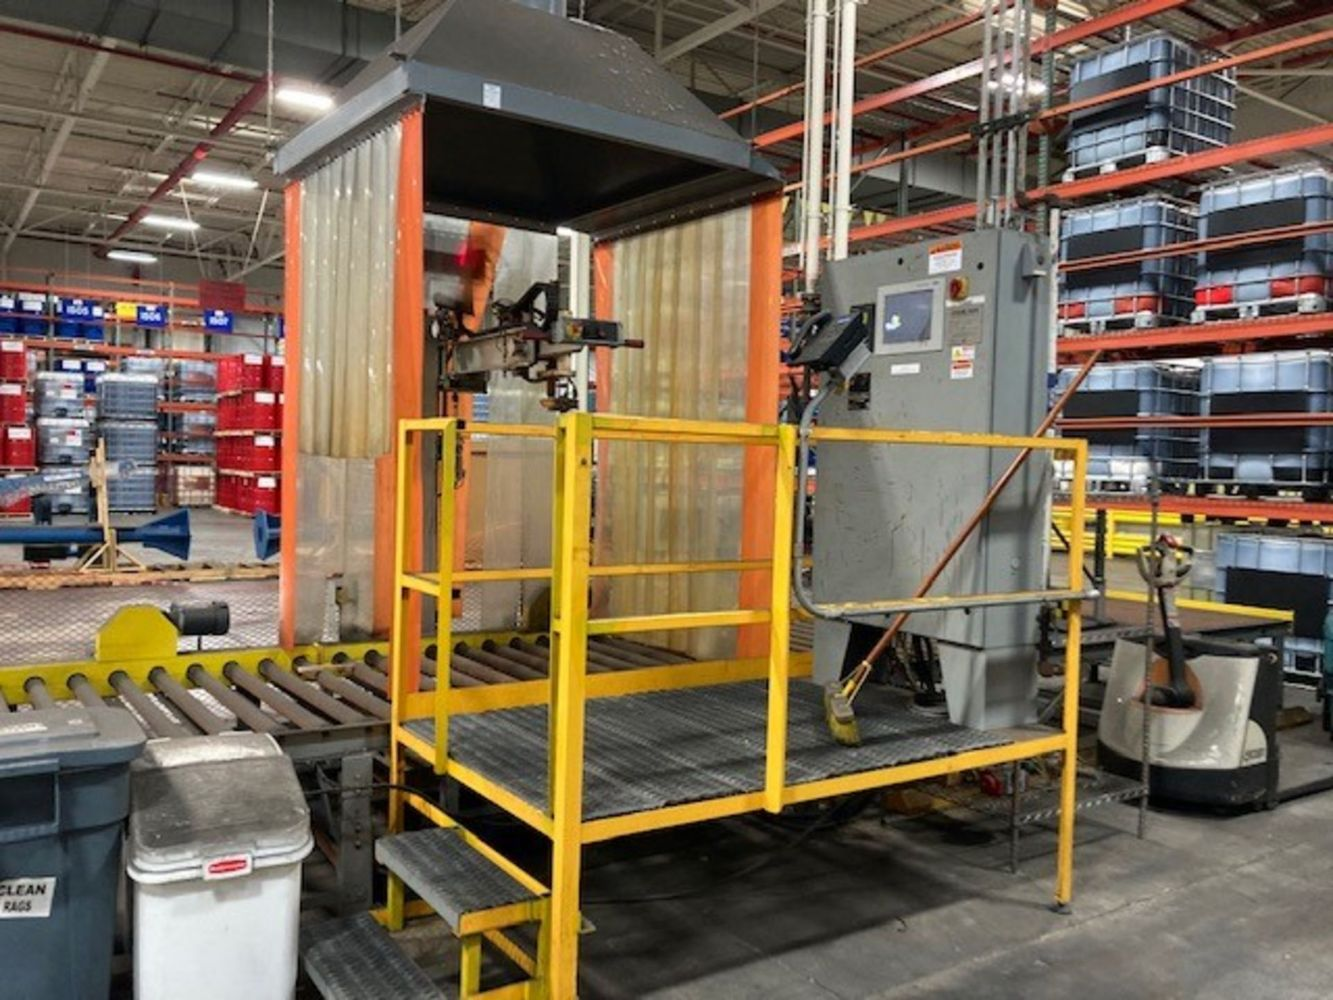 Processing Equipment from a Global Chemical Manufacturing Company